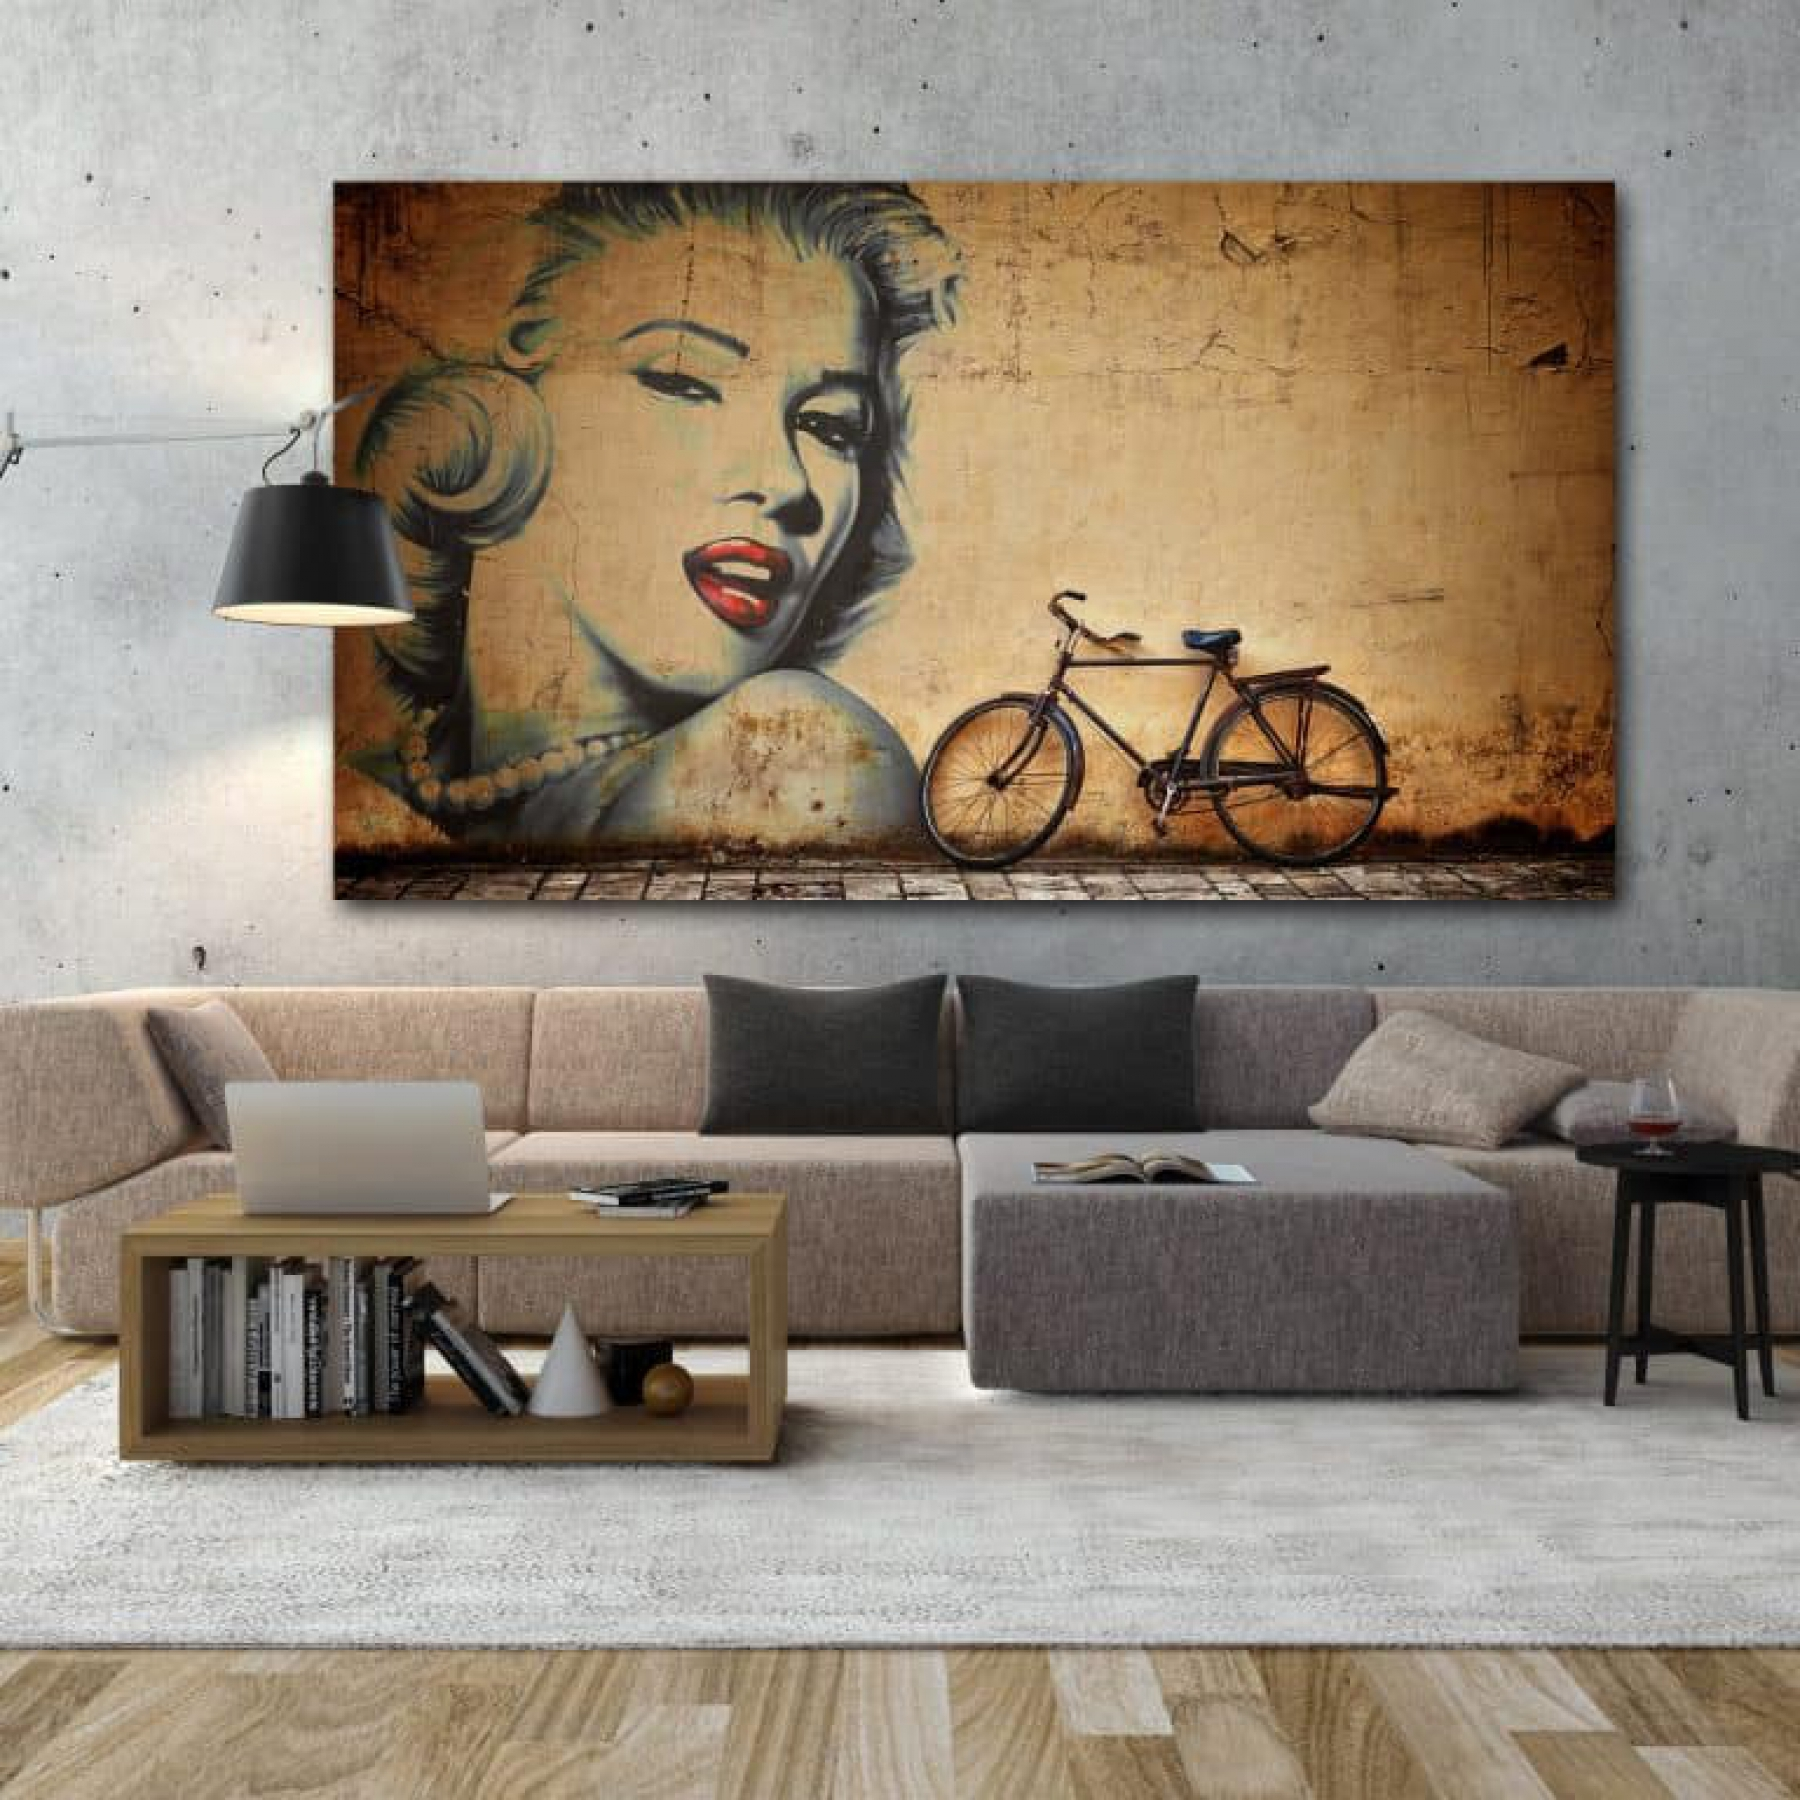 OLD CHINEES WALL WITH MARILYN